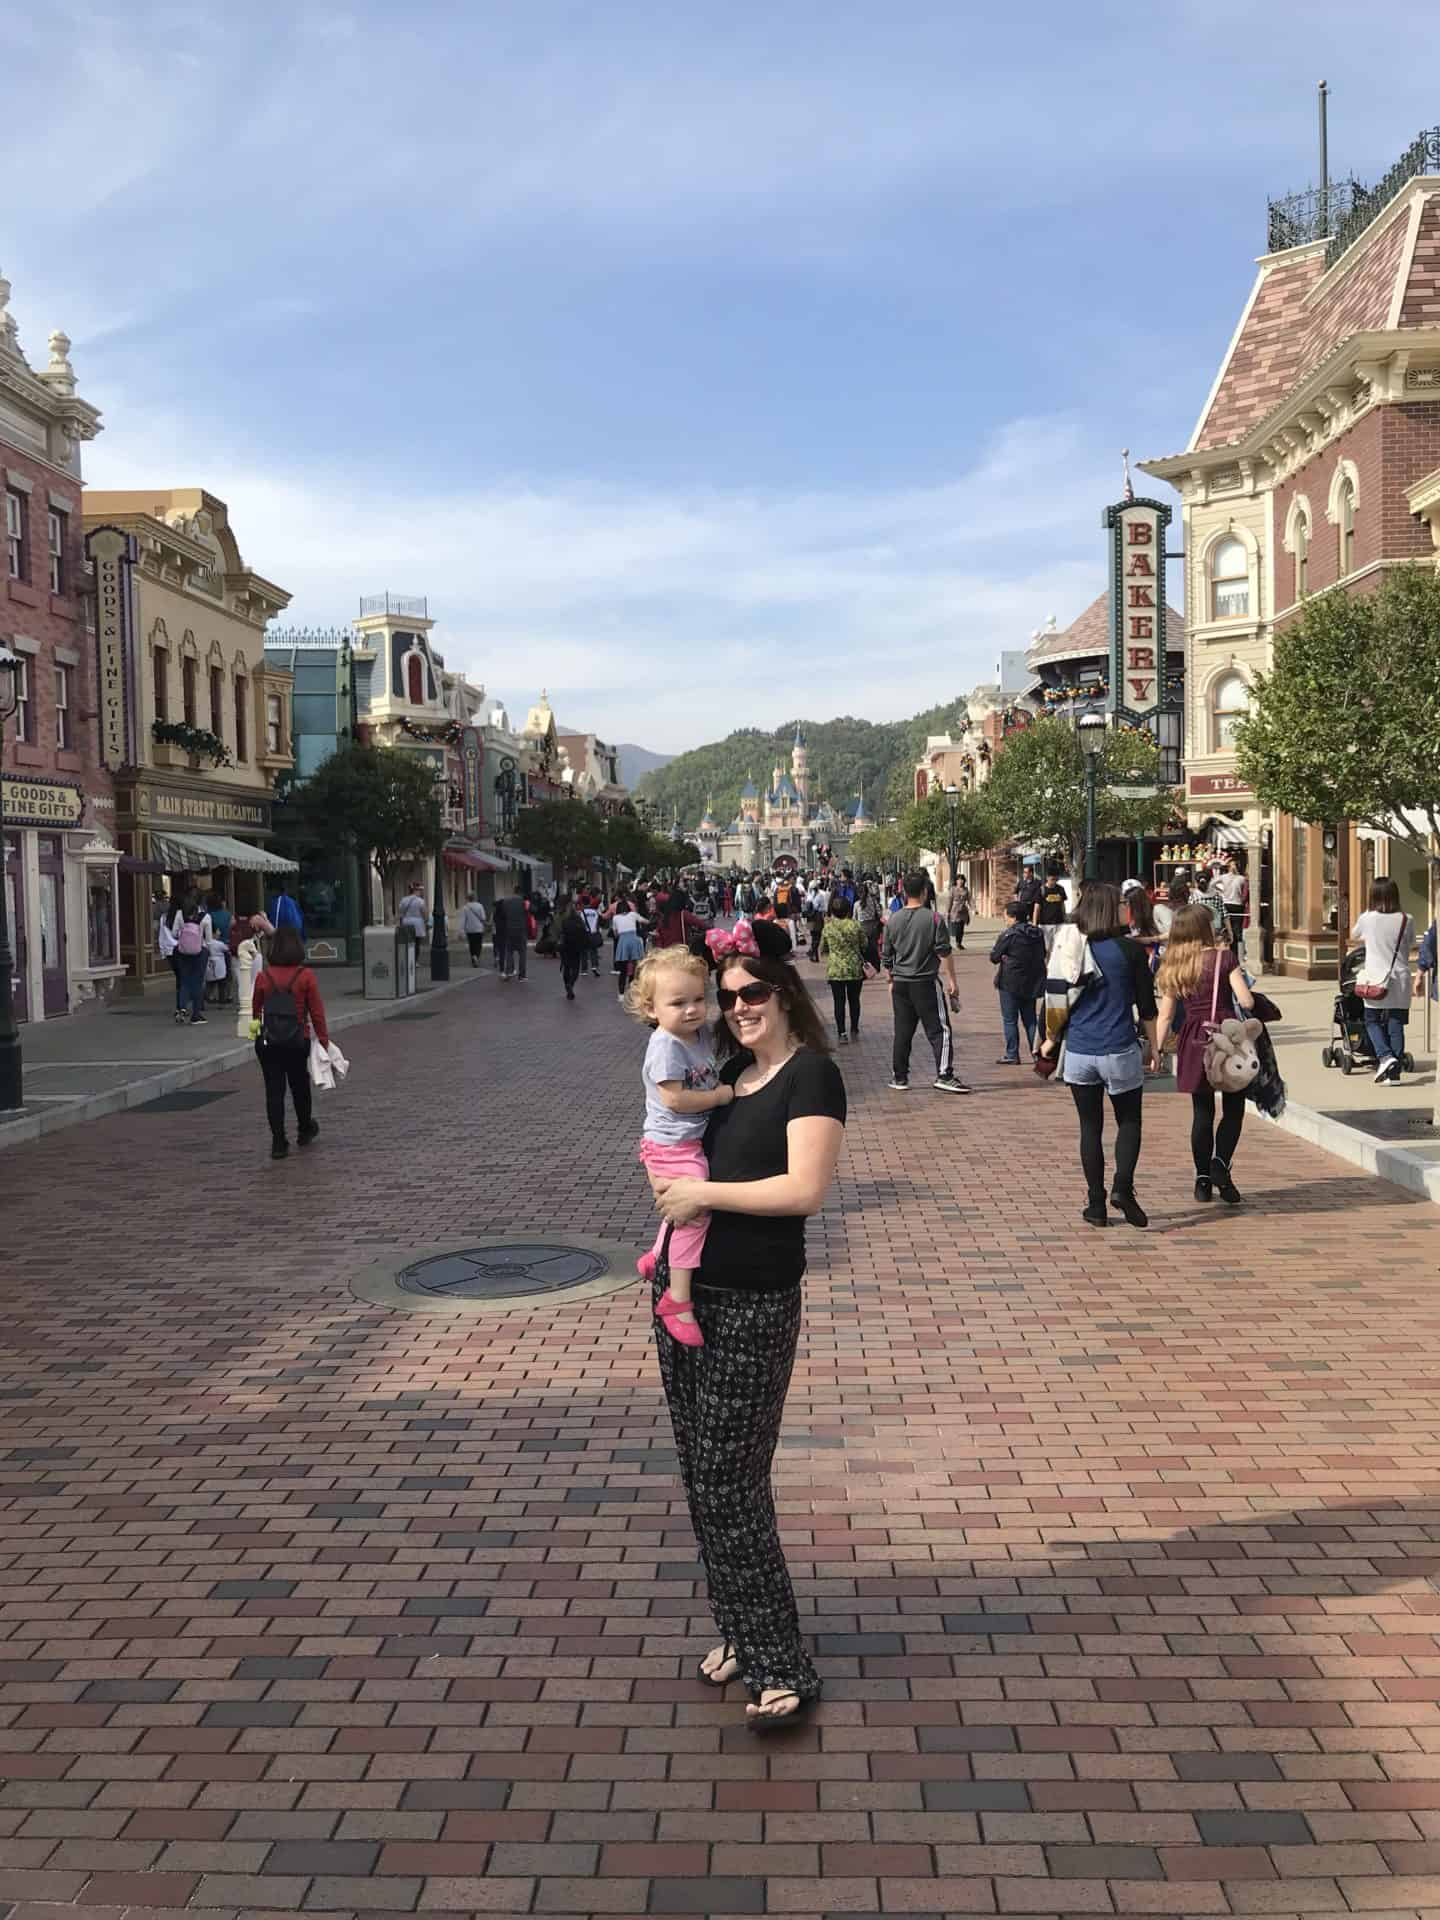 Is Hong Kong Disneyland toddler friendly?